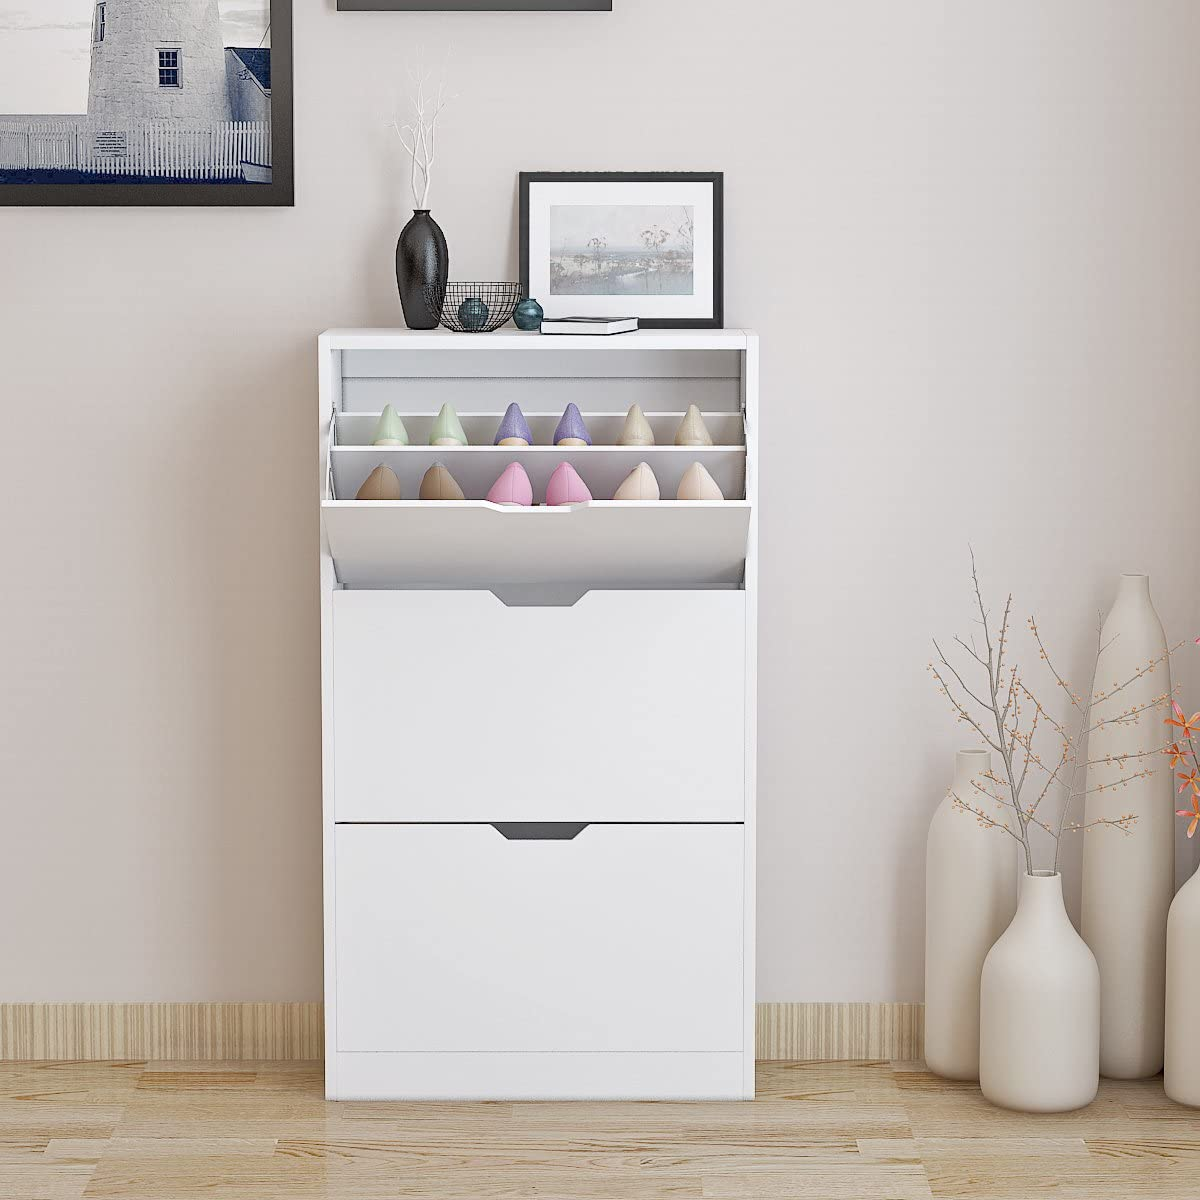 Beshomethings 3 Tiers Shoe Storage Cabinet,Wooden Rack Cupboard Sideboard Organizer Unit With Drawers in White